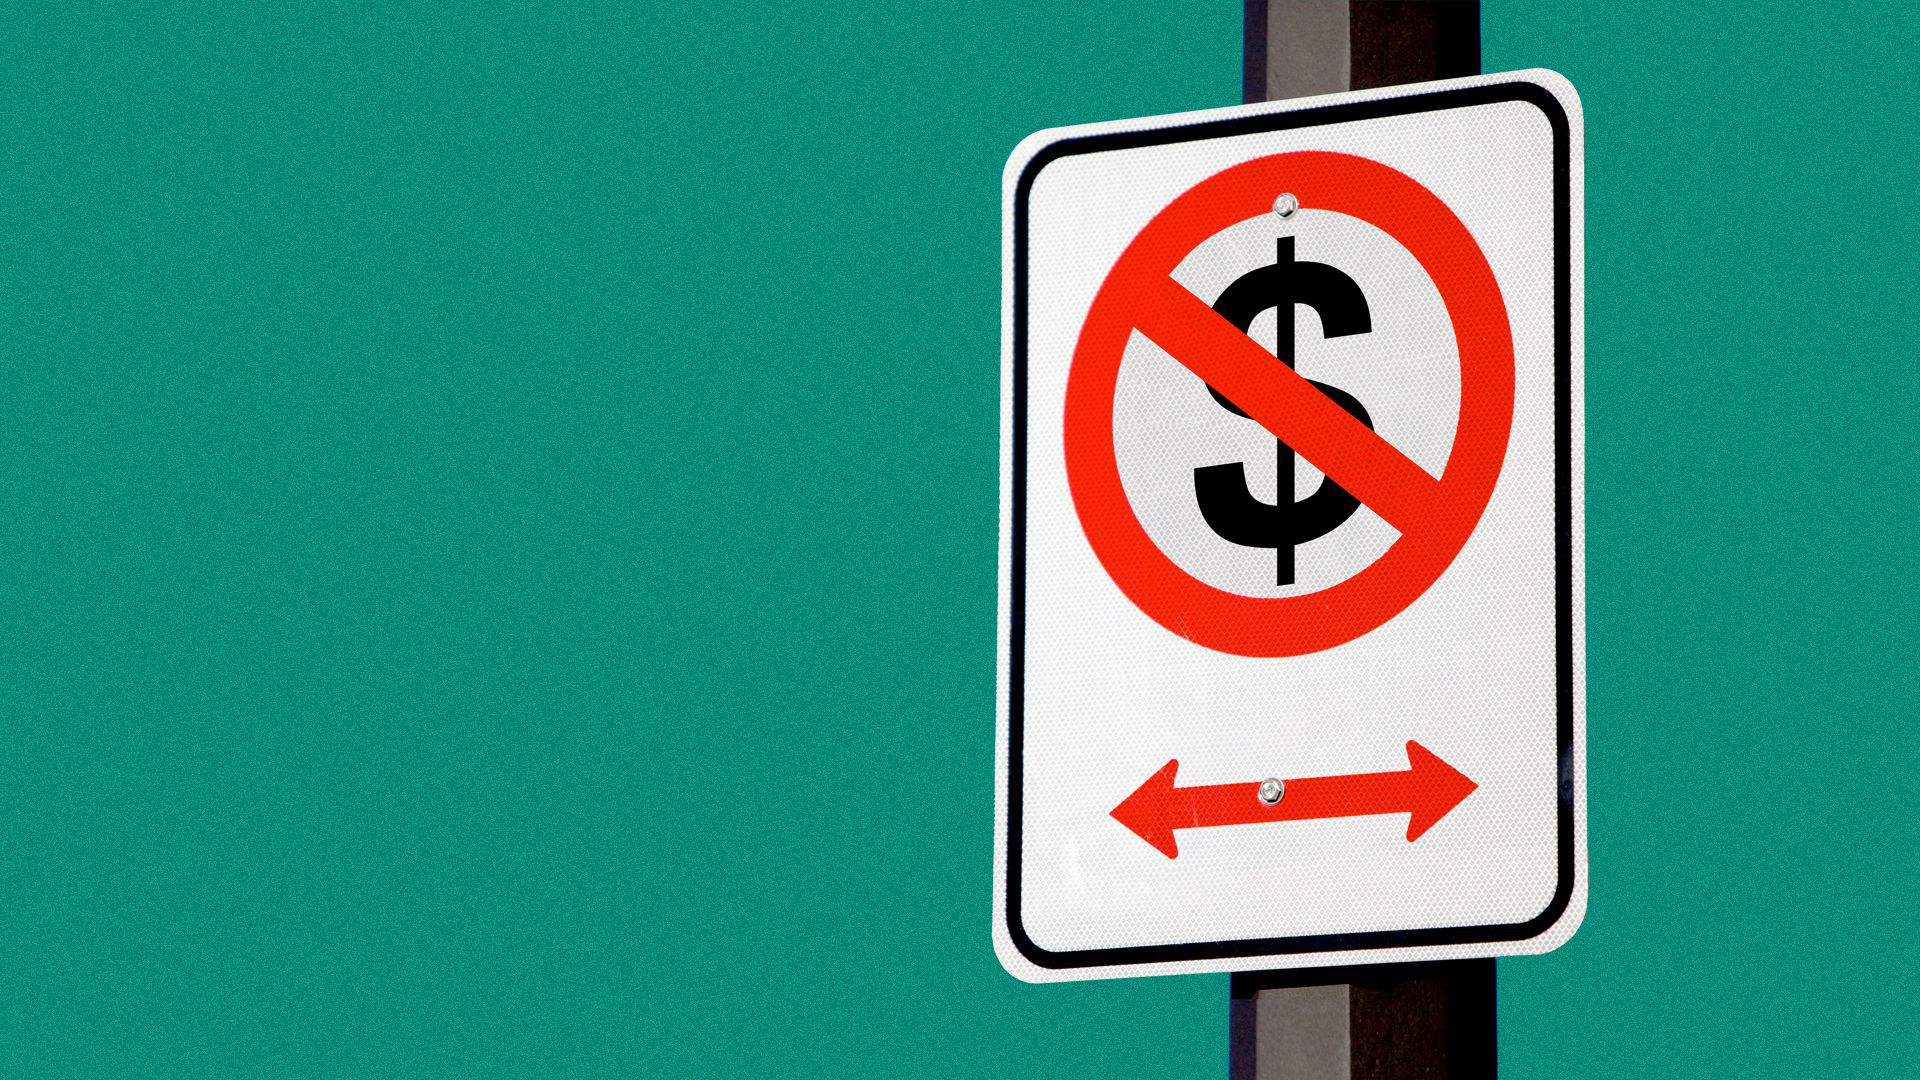 """Illustration of a """"no parking"""" sign with a dollar sign crossed out instead of a P."""